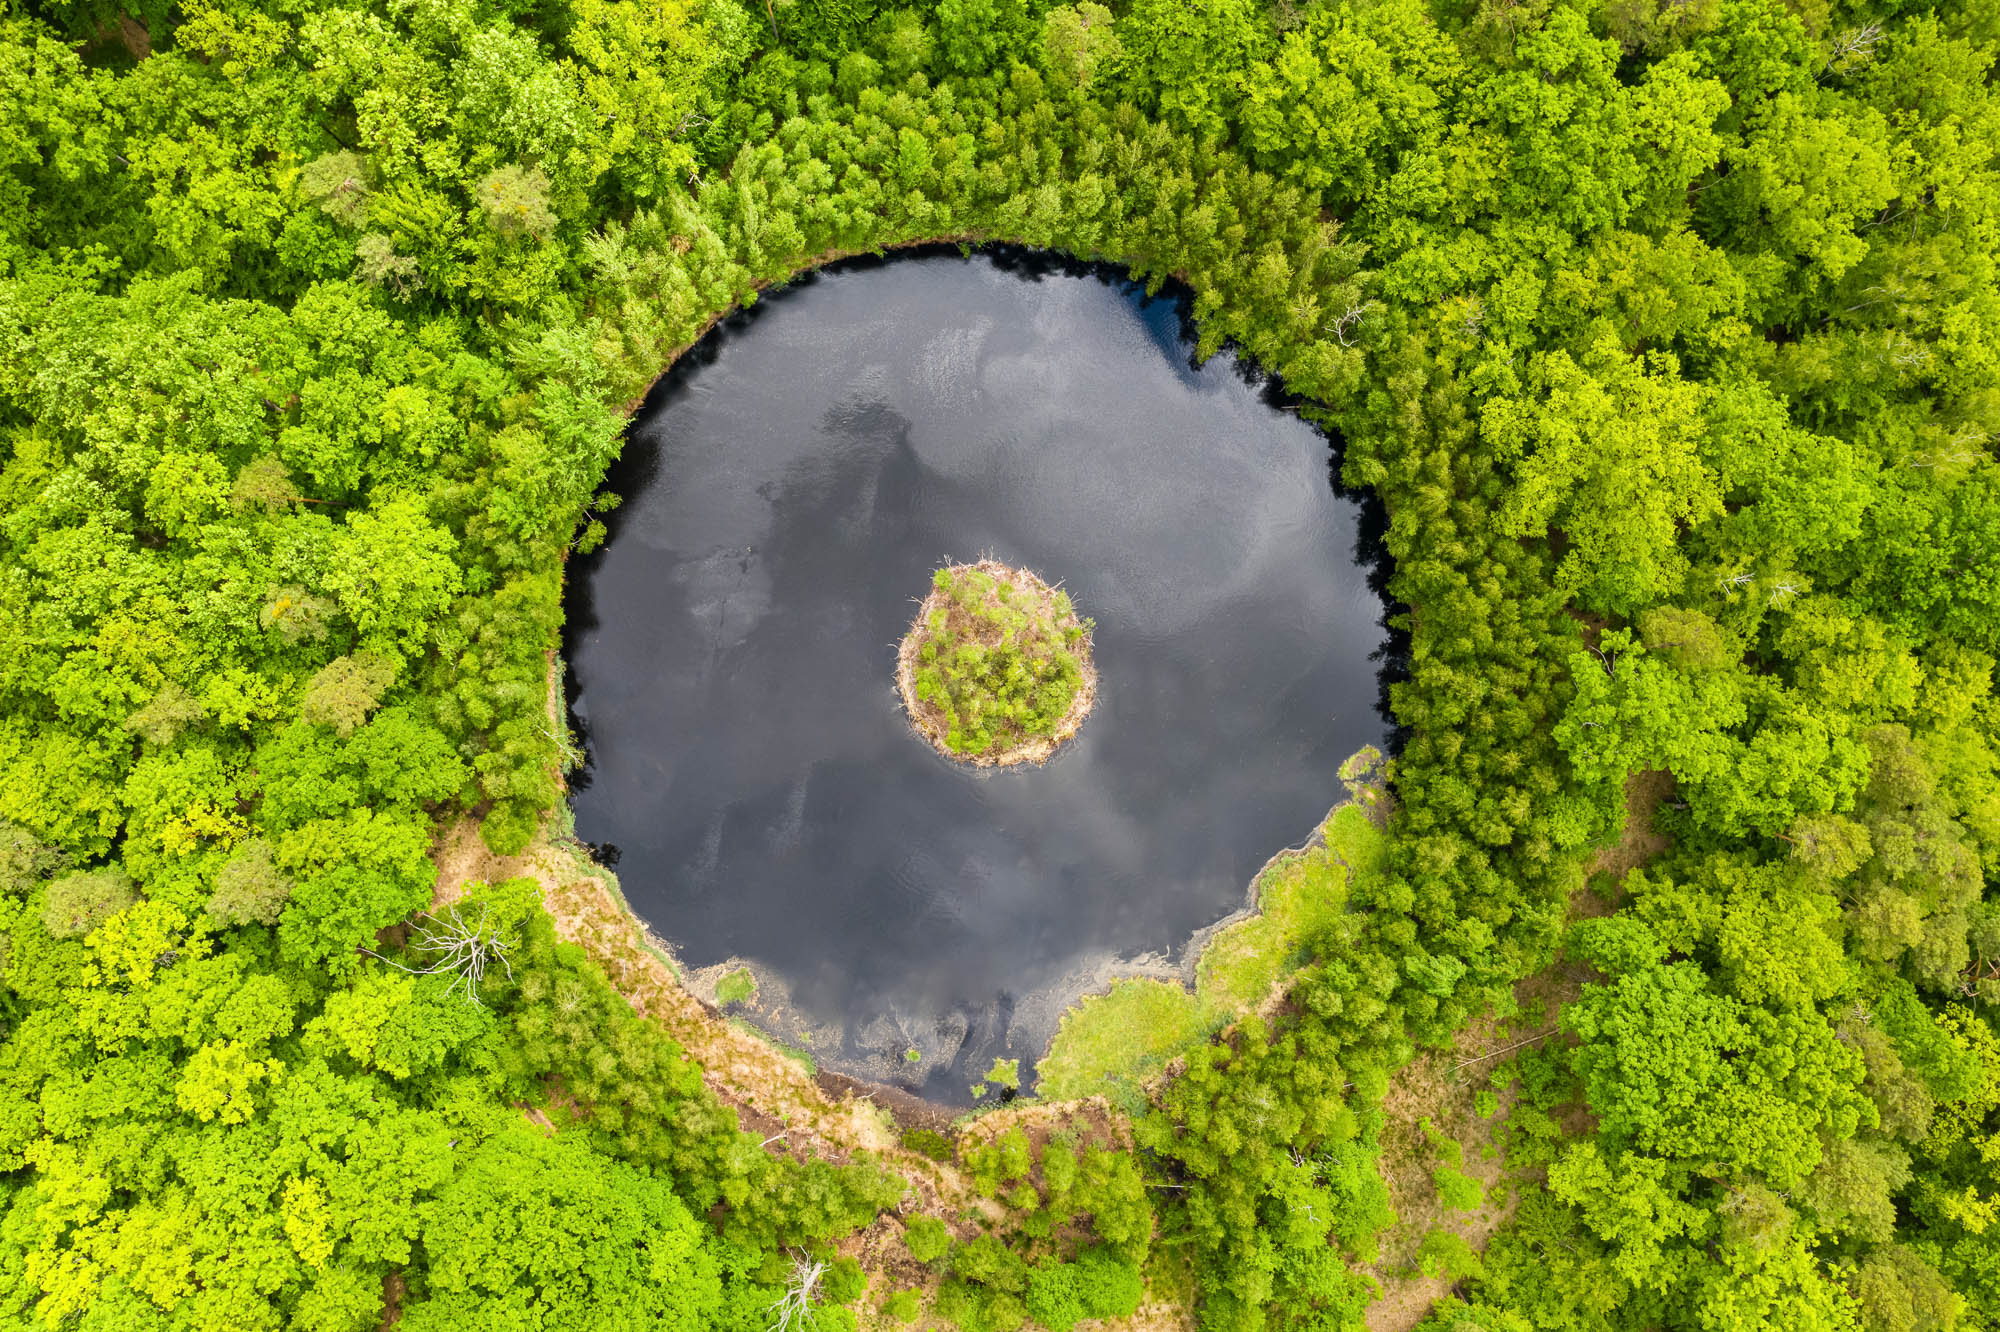 Round lake with island in the middle among forest, aerial view.